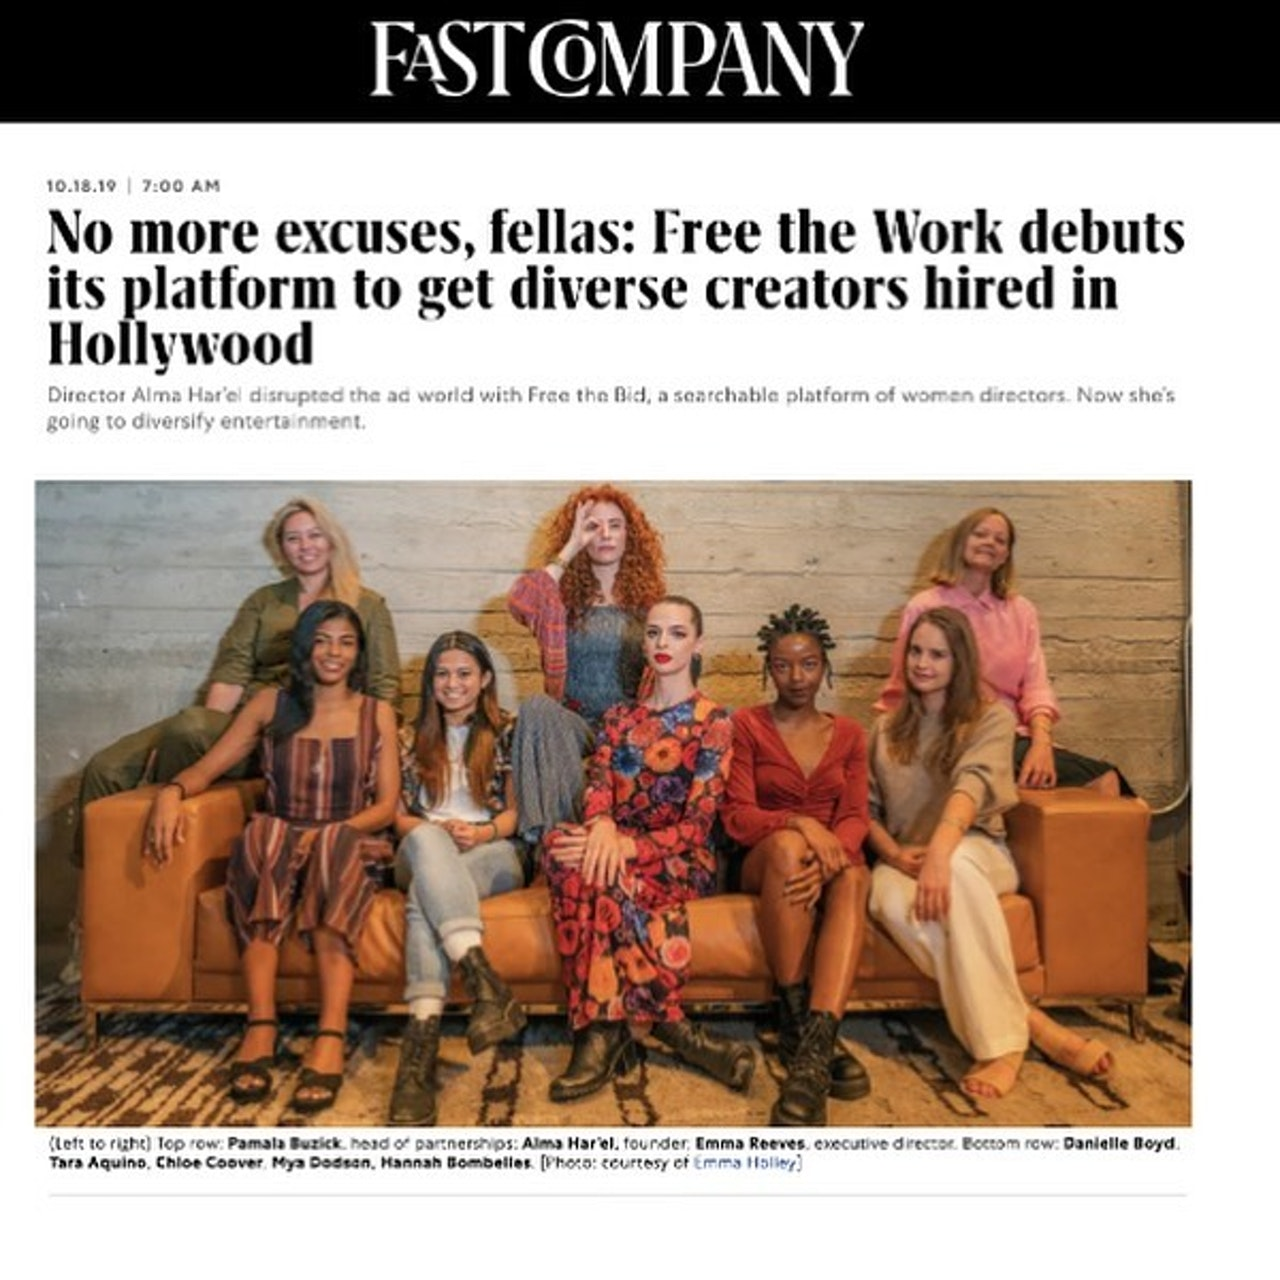 FASTCOMPANY amplifies FREETHEWORK's message: underrepresented creators are here, have always been here, and aren't going anywhere.